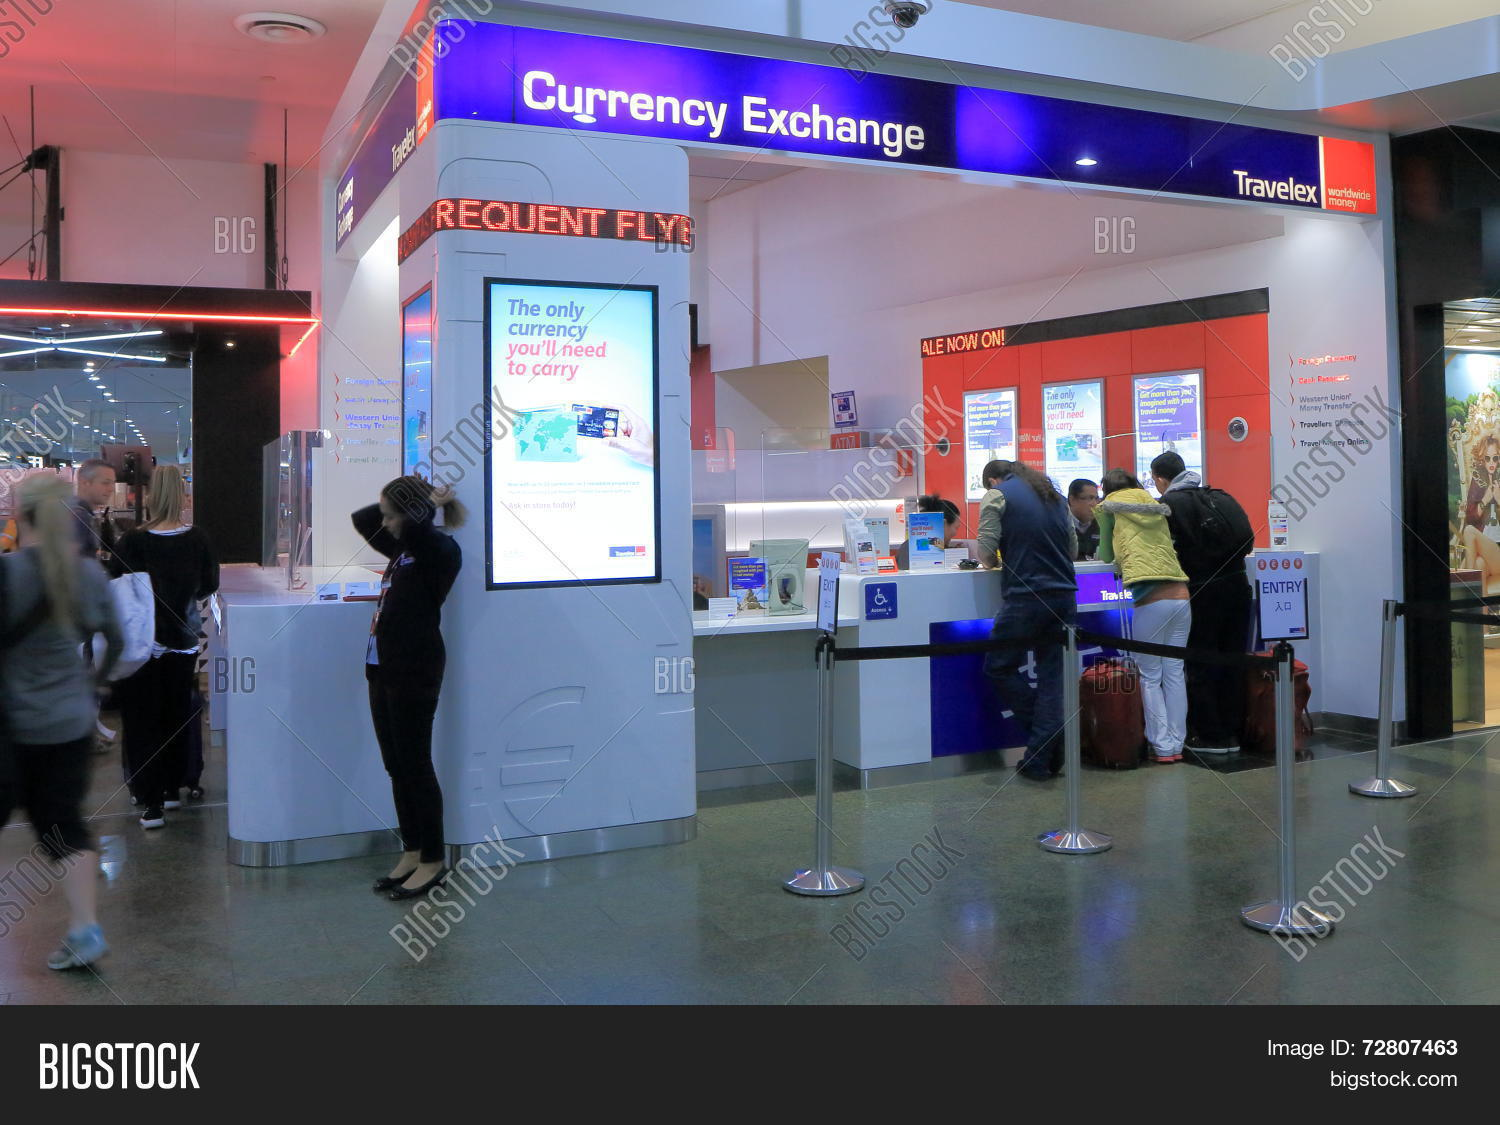 Travelex Currency Image & Photo (Free Trial) | Bigstock